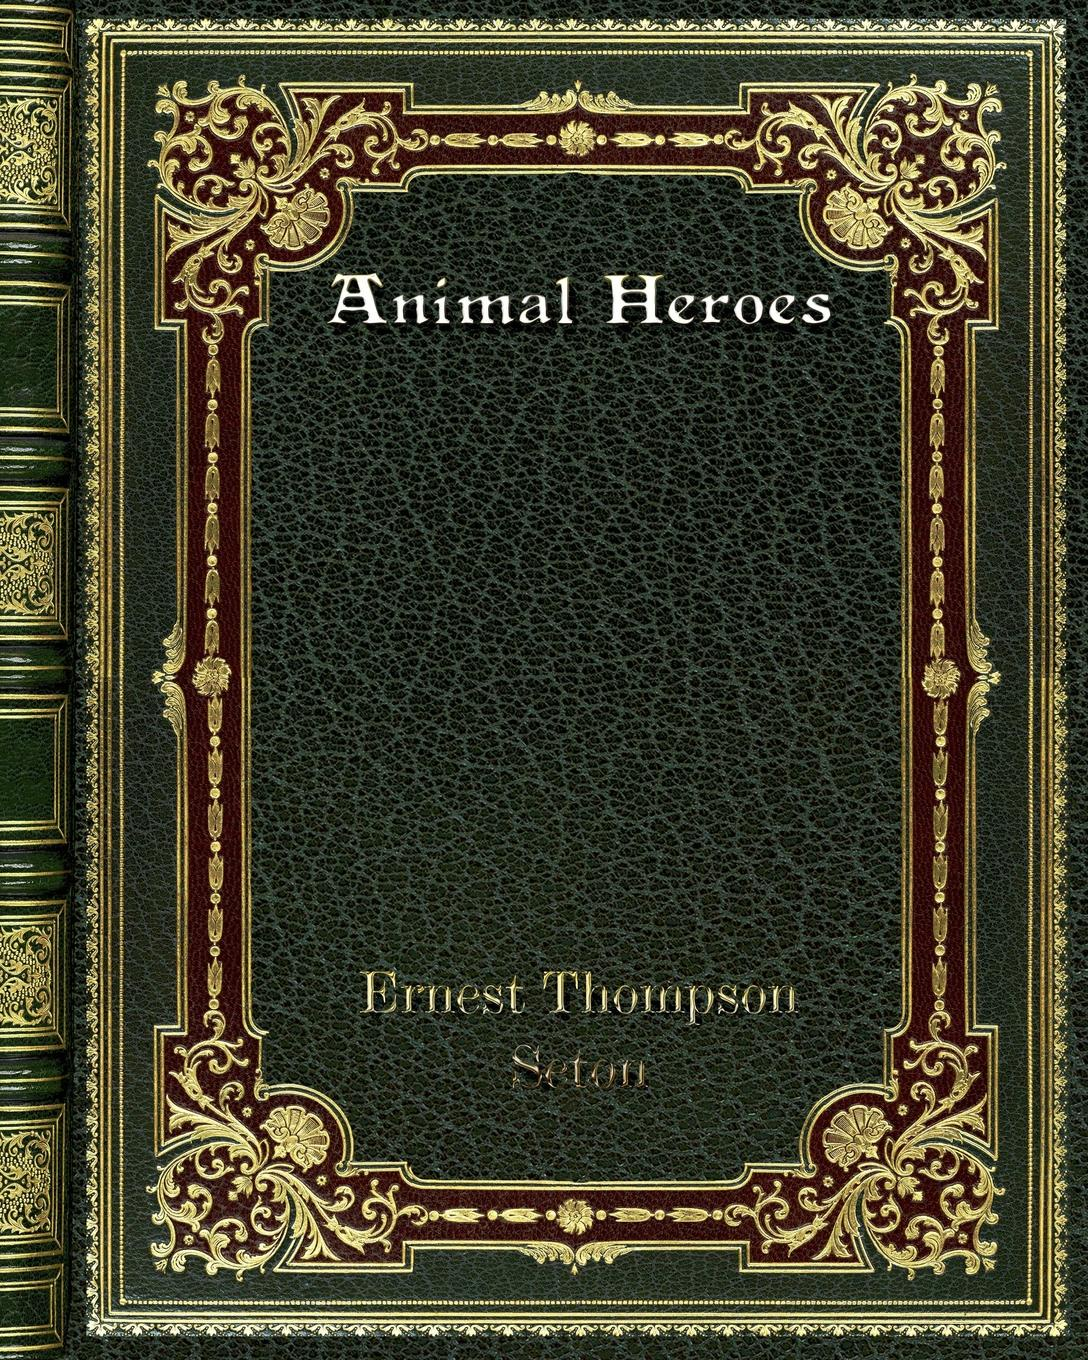 Ernest Thompson Seton Animal Heroes ernest seton thompson the biography of a grizzly